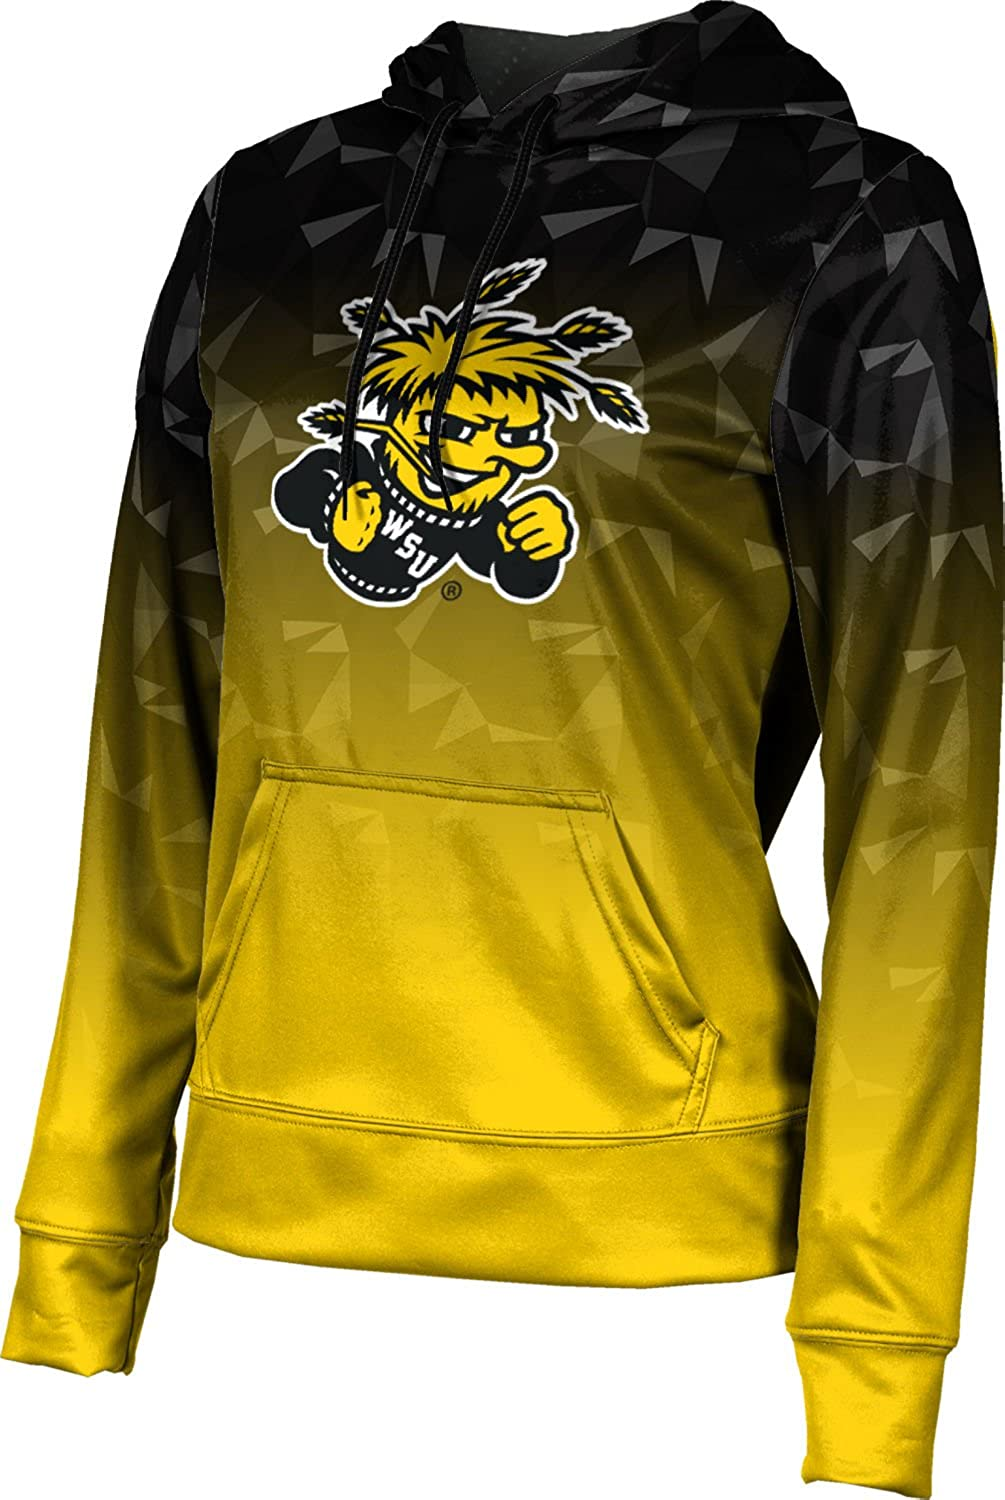 ProSphere Wichita State University Girls Pullover Hoodie Maya School Spirit Sweatshirt